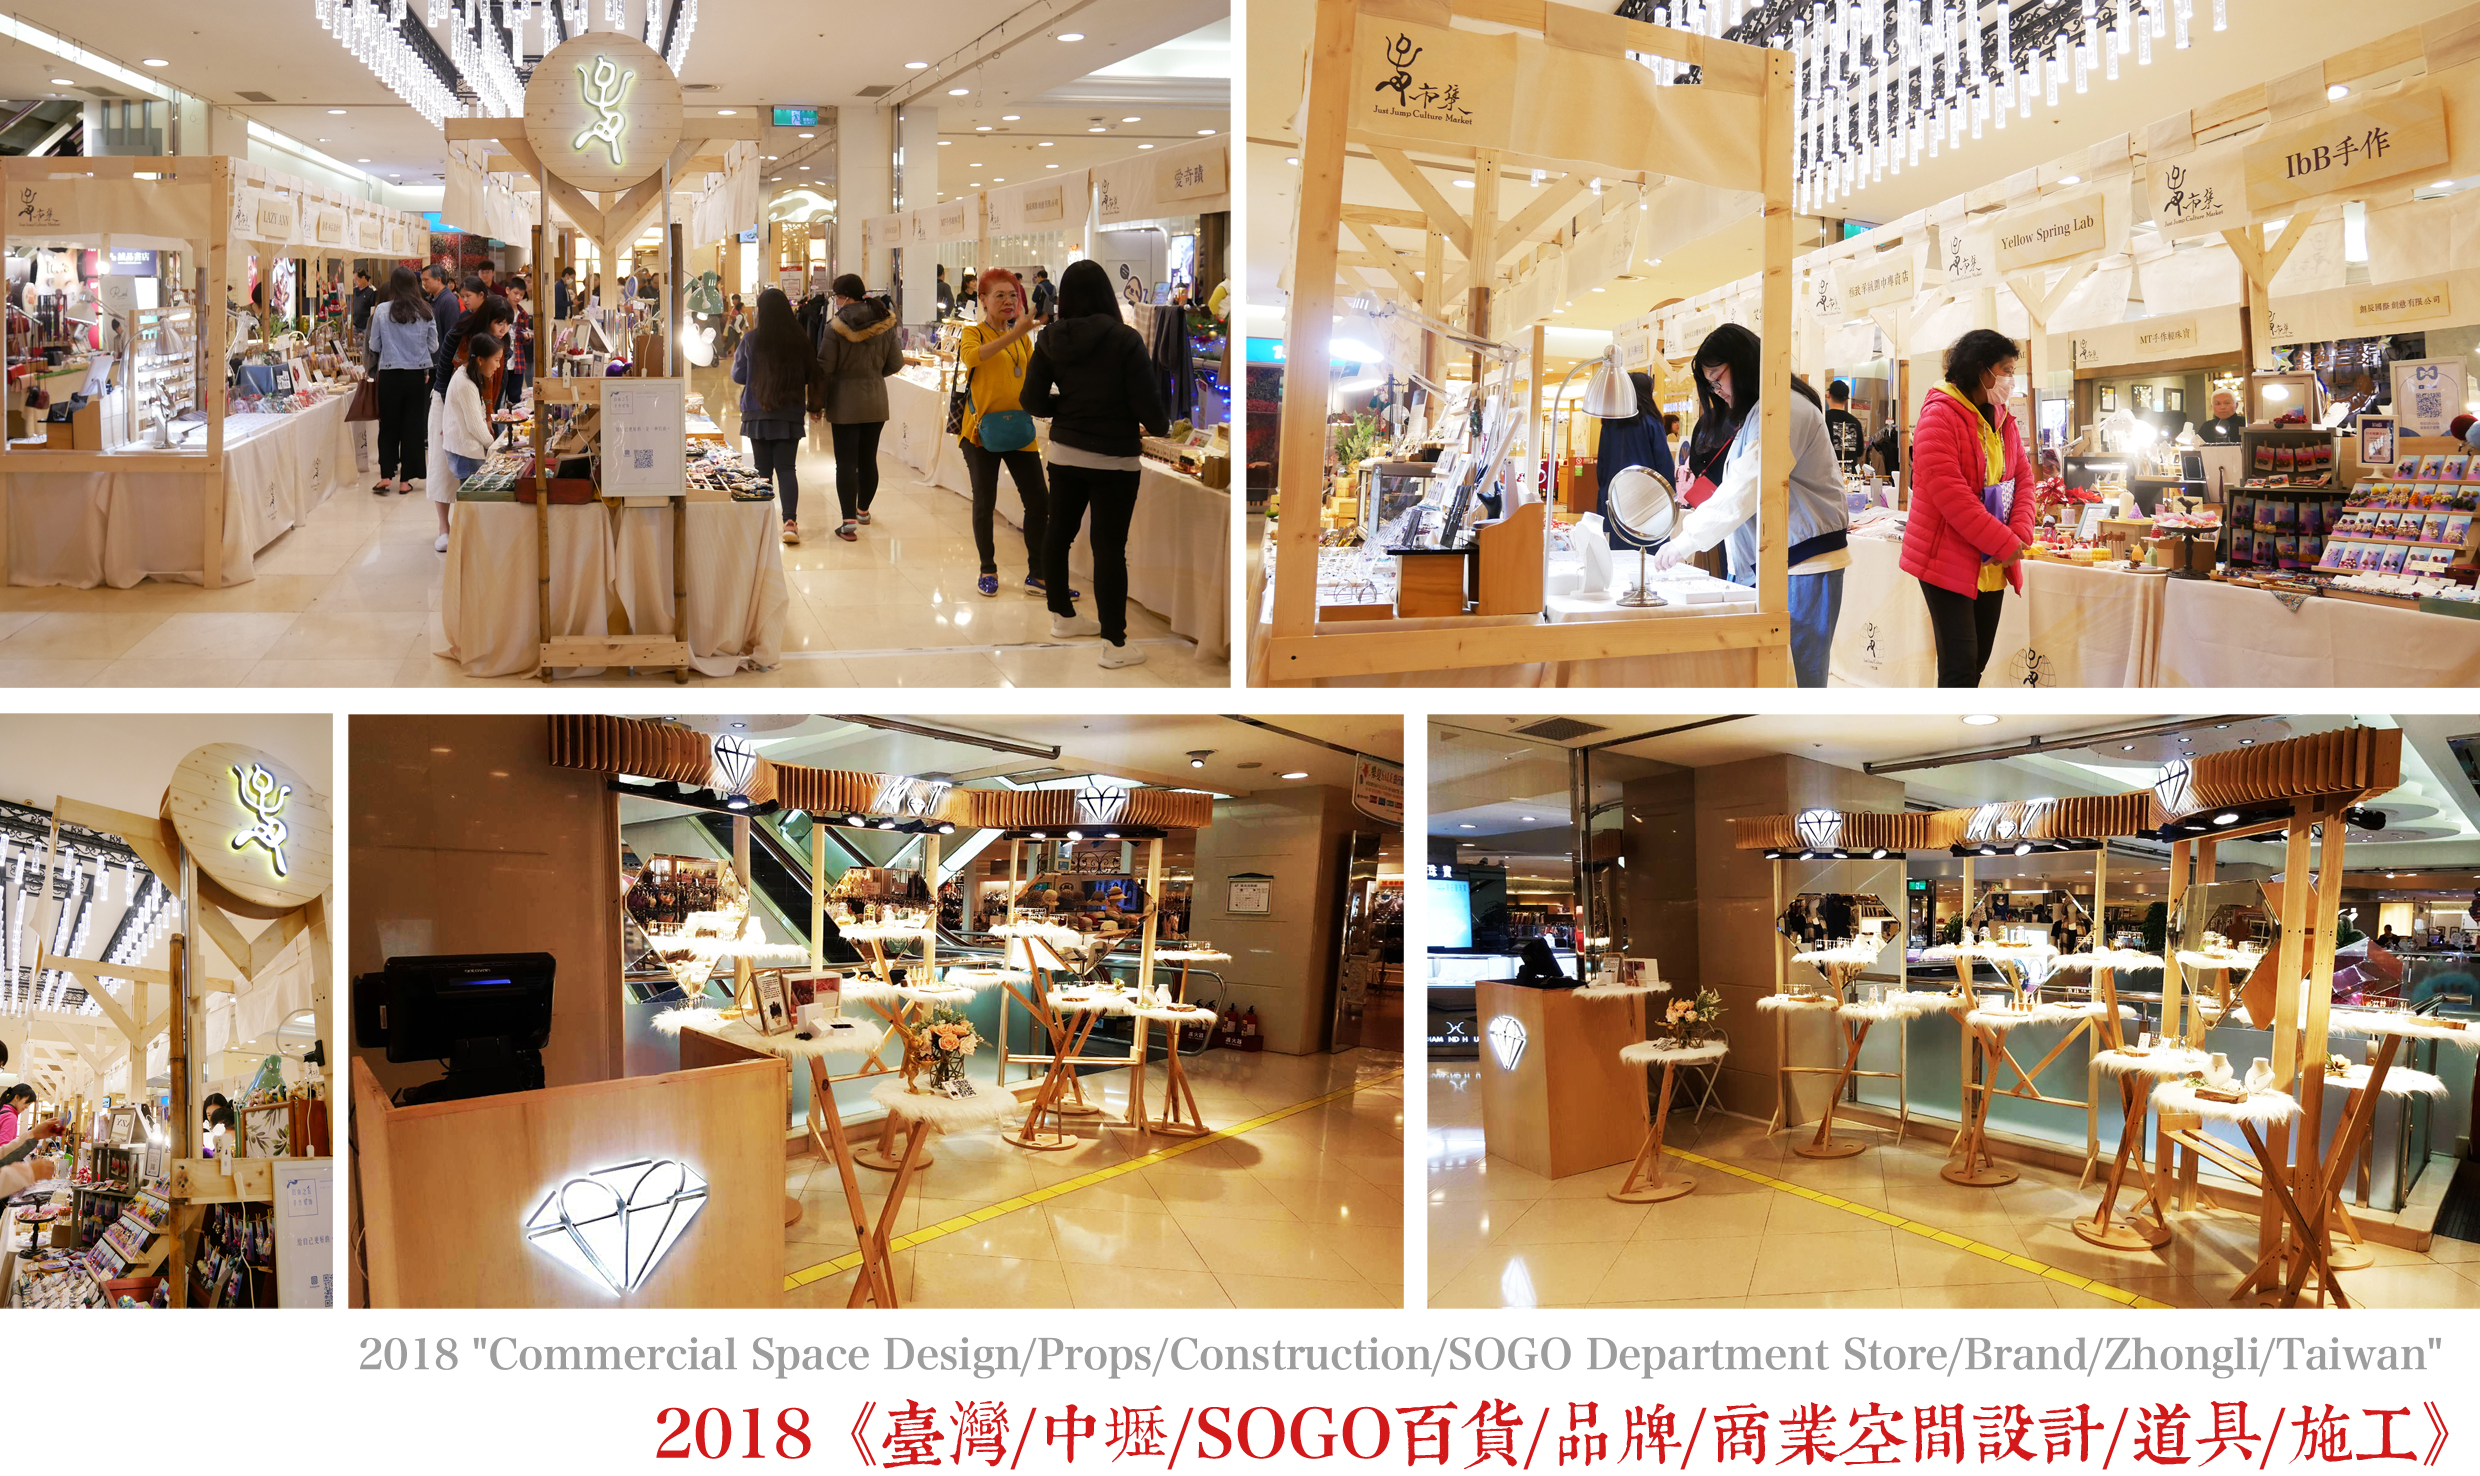 "2018 ""Commercial Space Design/Props/Construction/SOGO Department Store/Brand/Zhongli/Taiwan""2018《臺灣/中壢/SOGO百貨/品牌/商業空間設計/道具/施工》【Just Jump Culture all rights reserved子丑文創/版權所有】"